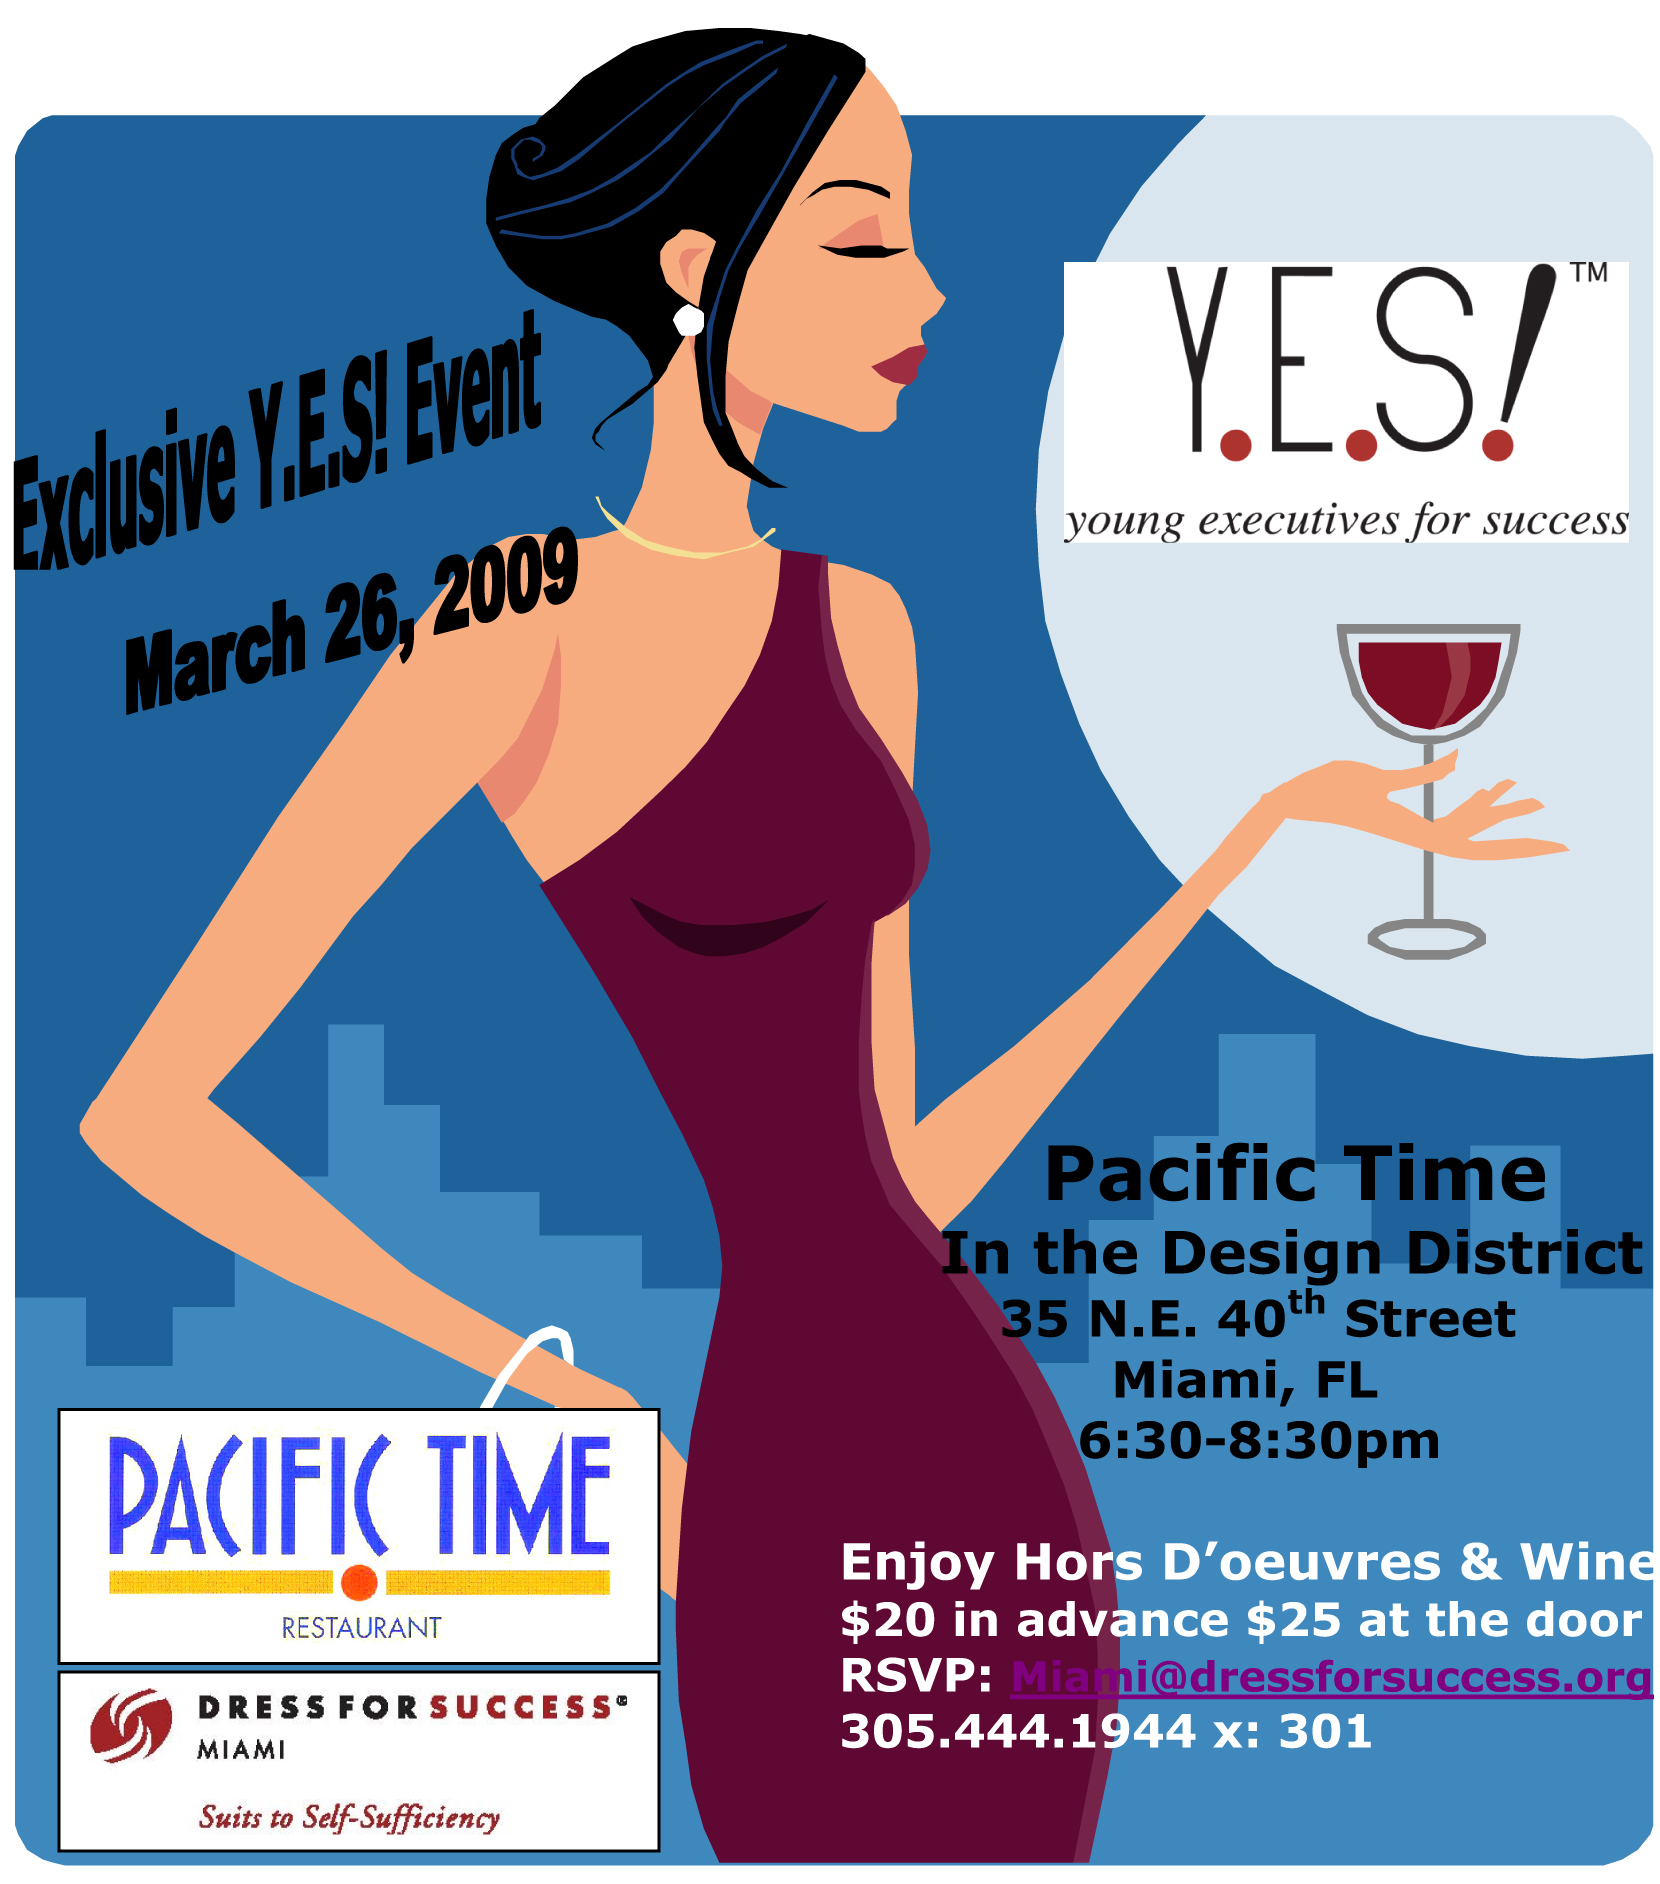 microsoft-word-exclusive-pacific-time-y-e-s-event-3-copy